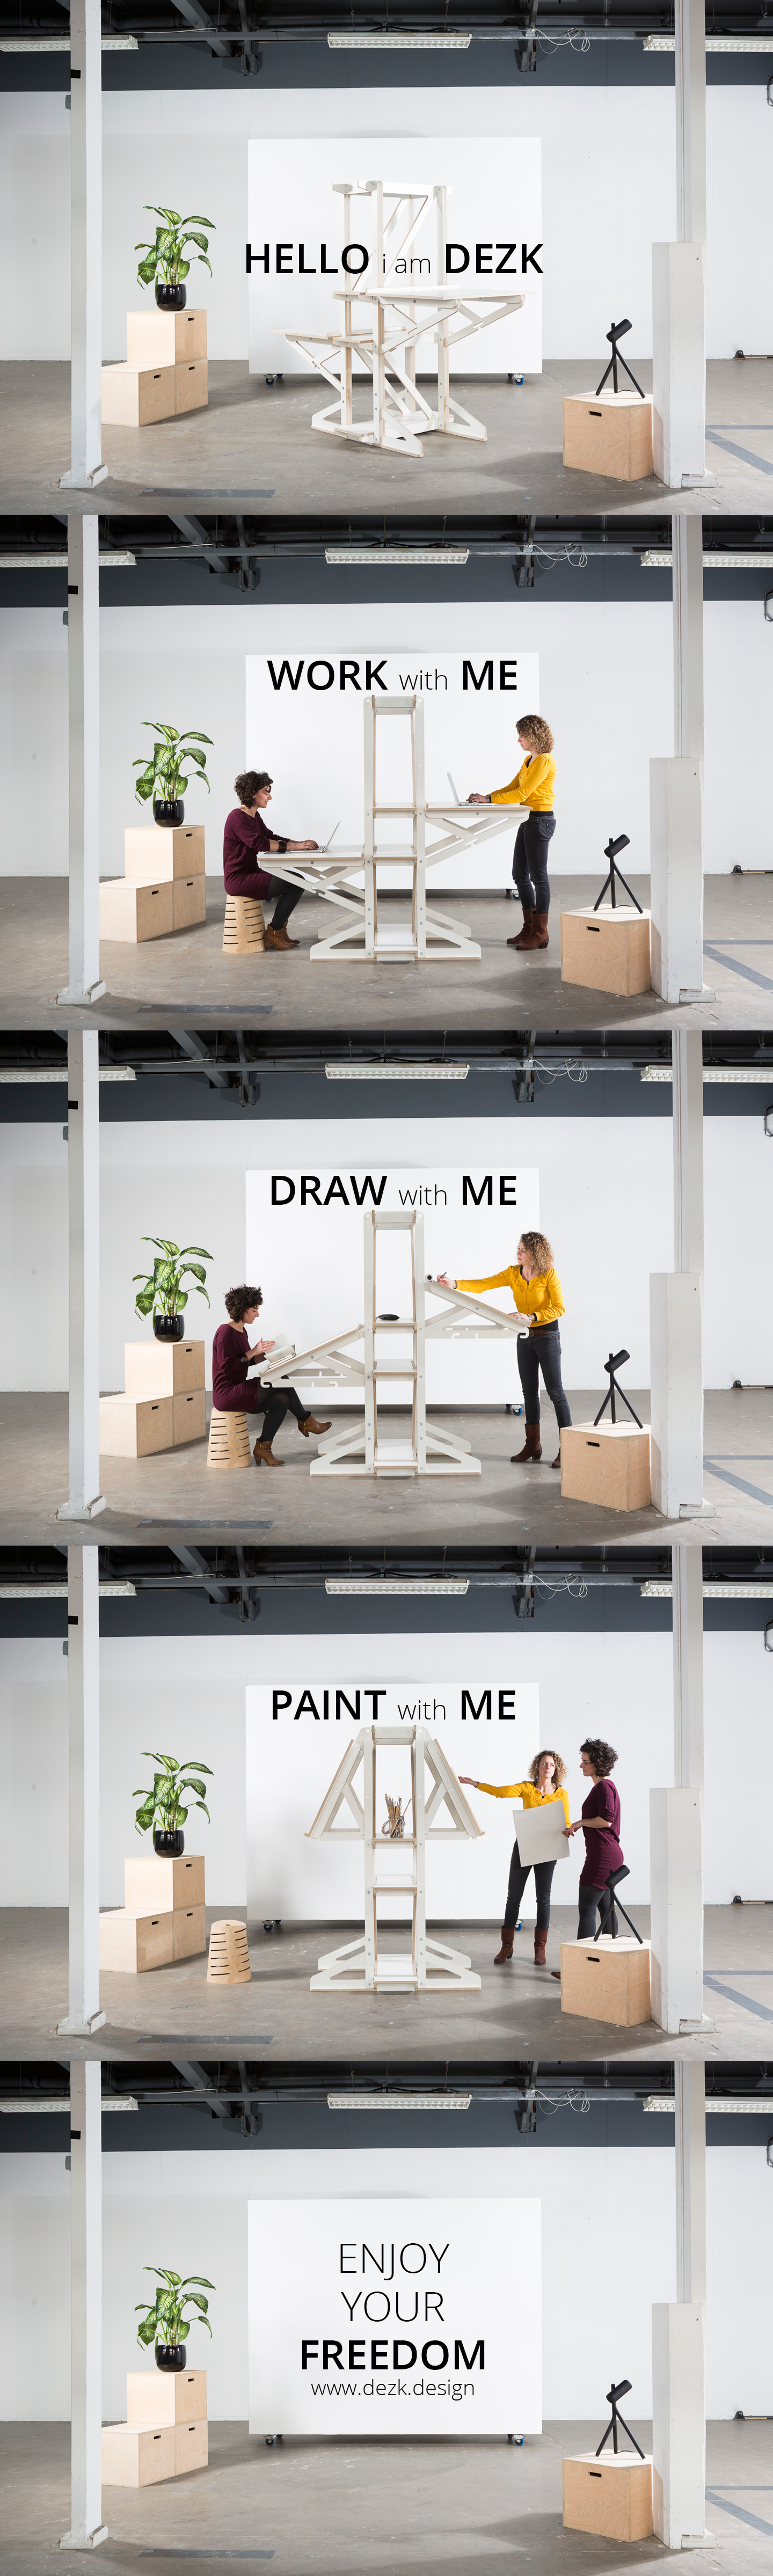 Flexible Furniture Design By Architecture And Design Firm Atelier To The  Bone. With The DEZK You Can Work, Draw And Paint. Stand Or Sit. Enjoy Youru2026